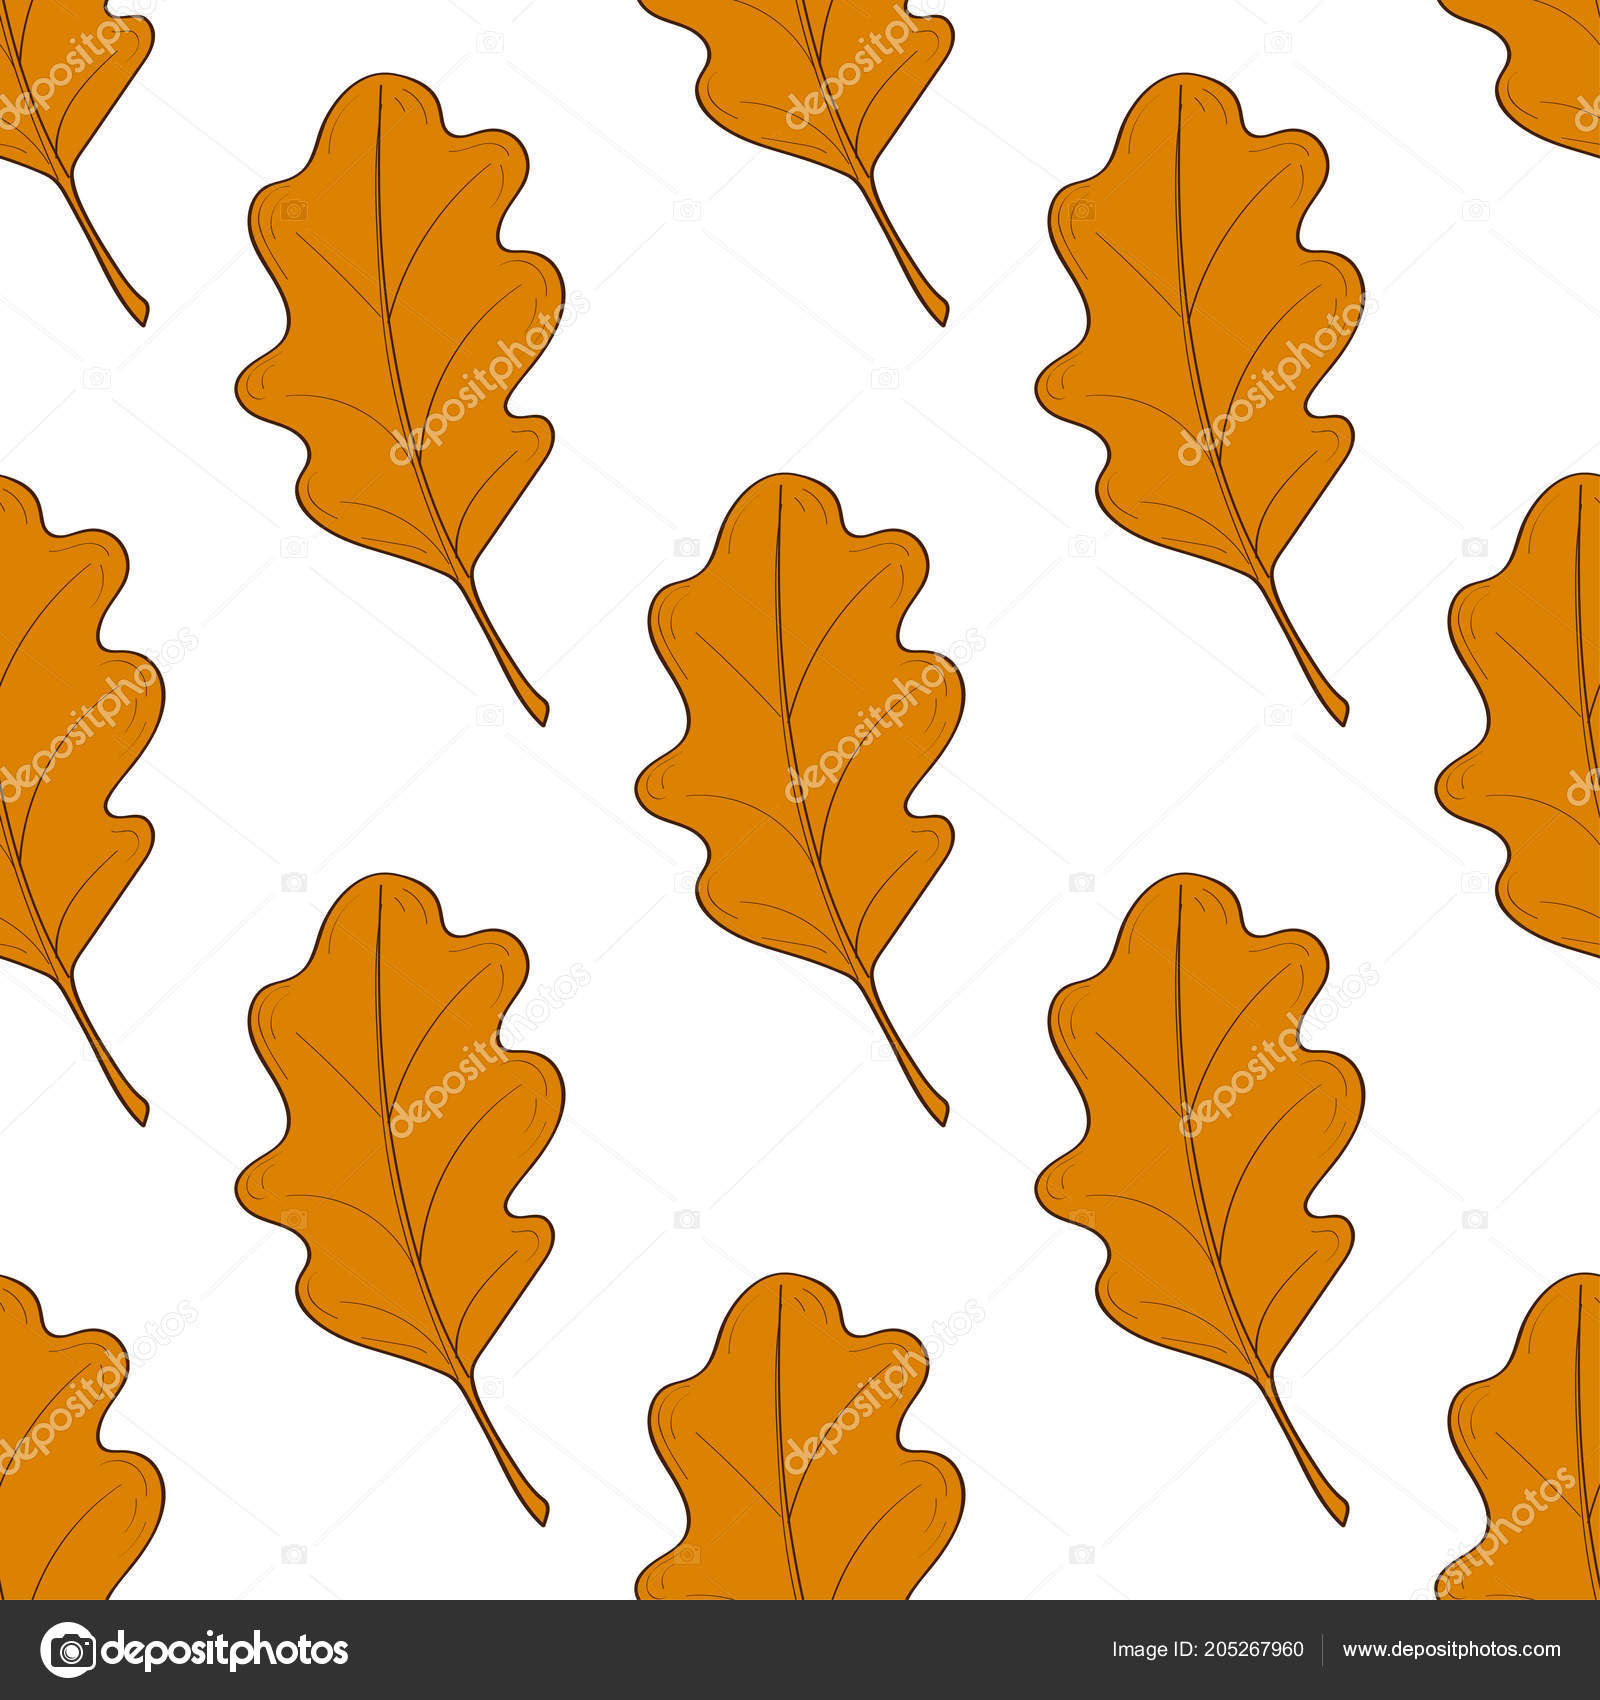 Hand drawn seamless pattern with fallen autumn leaves of various